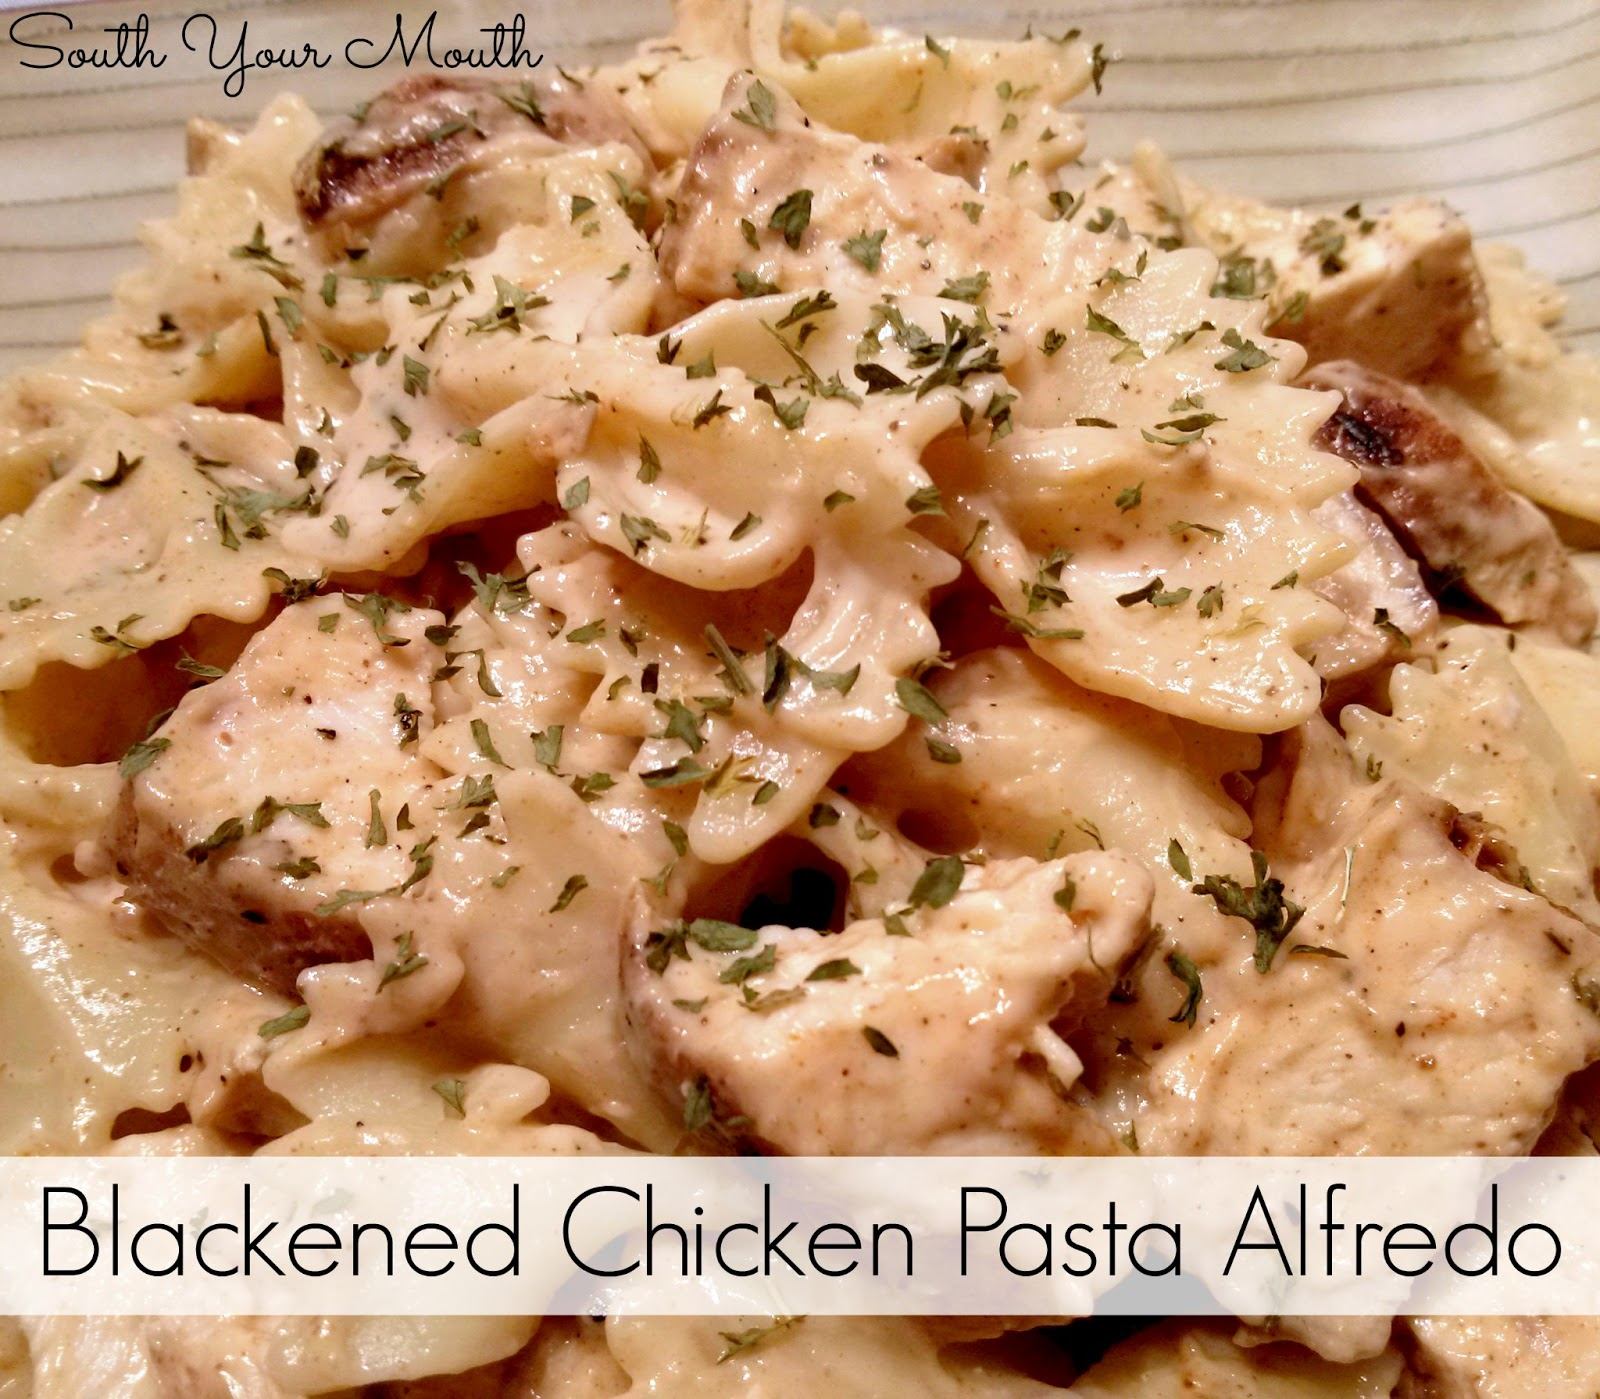 South Your Mouth Blackened Chicken Pasta Alfredo